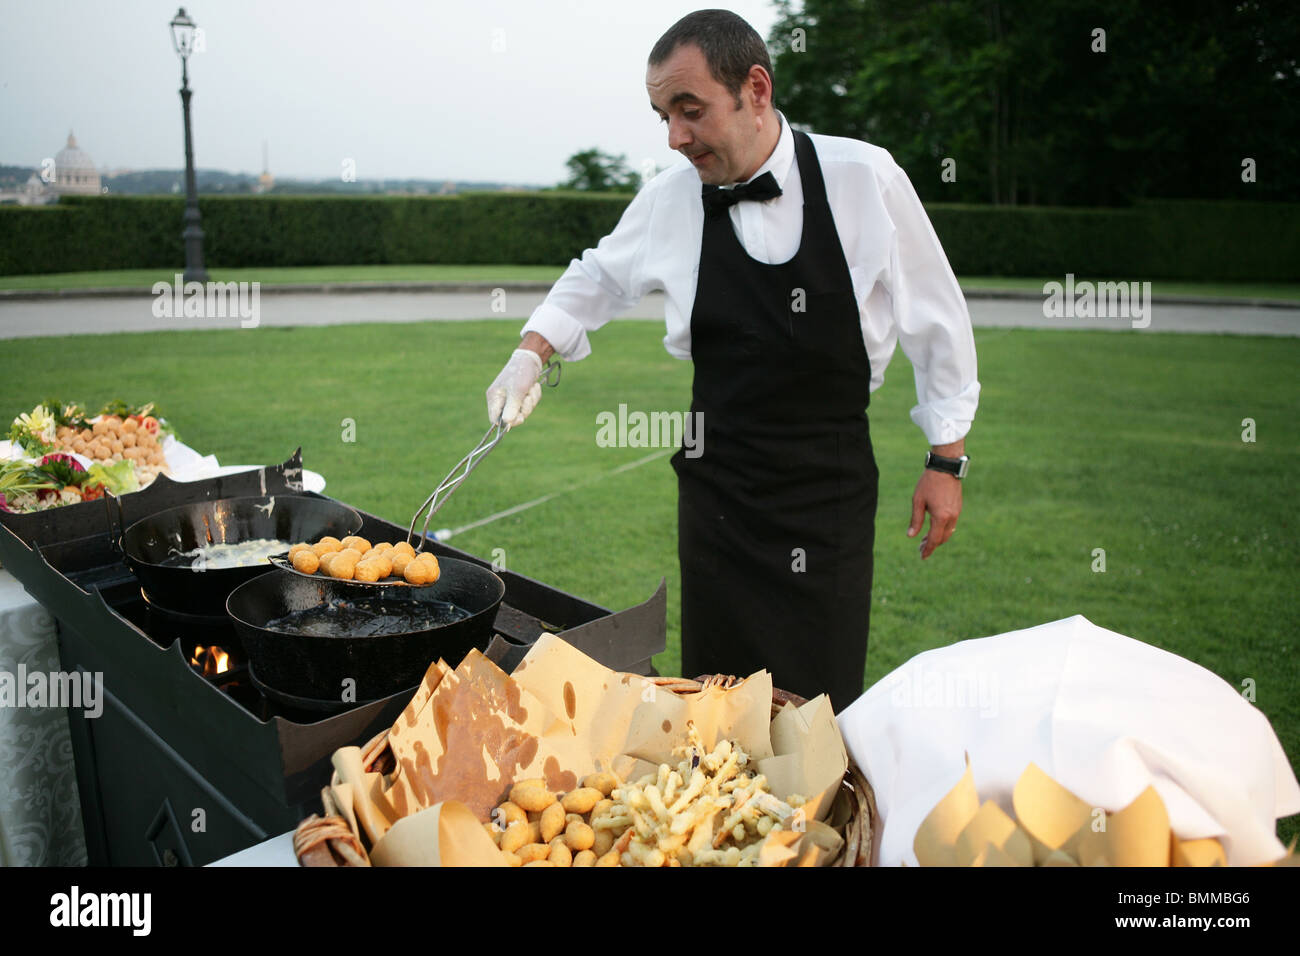 Chef Garden: A Man Chef Cook Cooking Some Fried In A Outdoor Villa